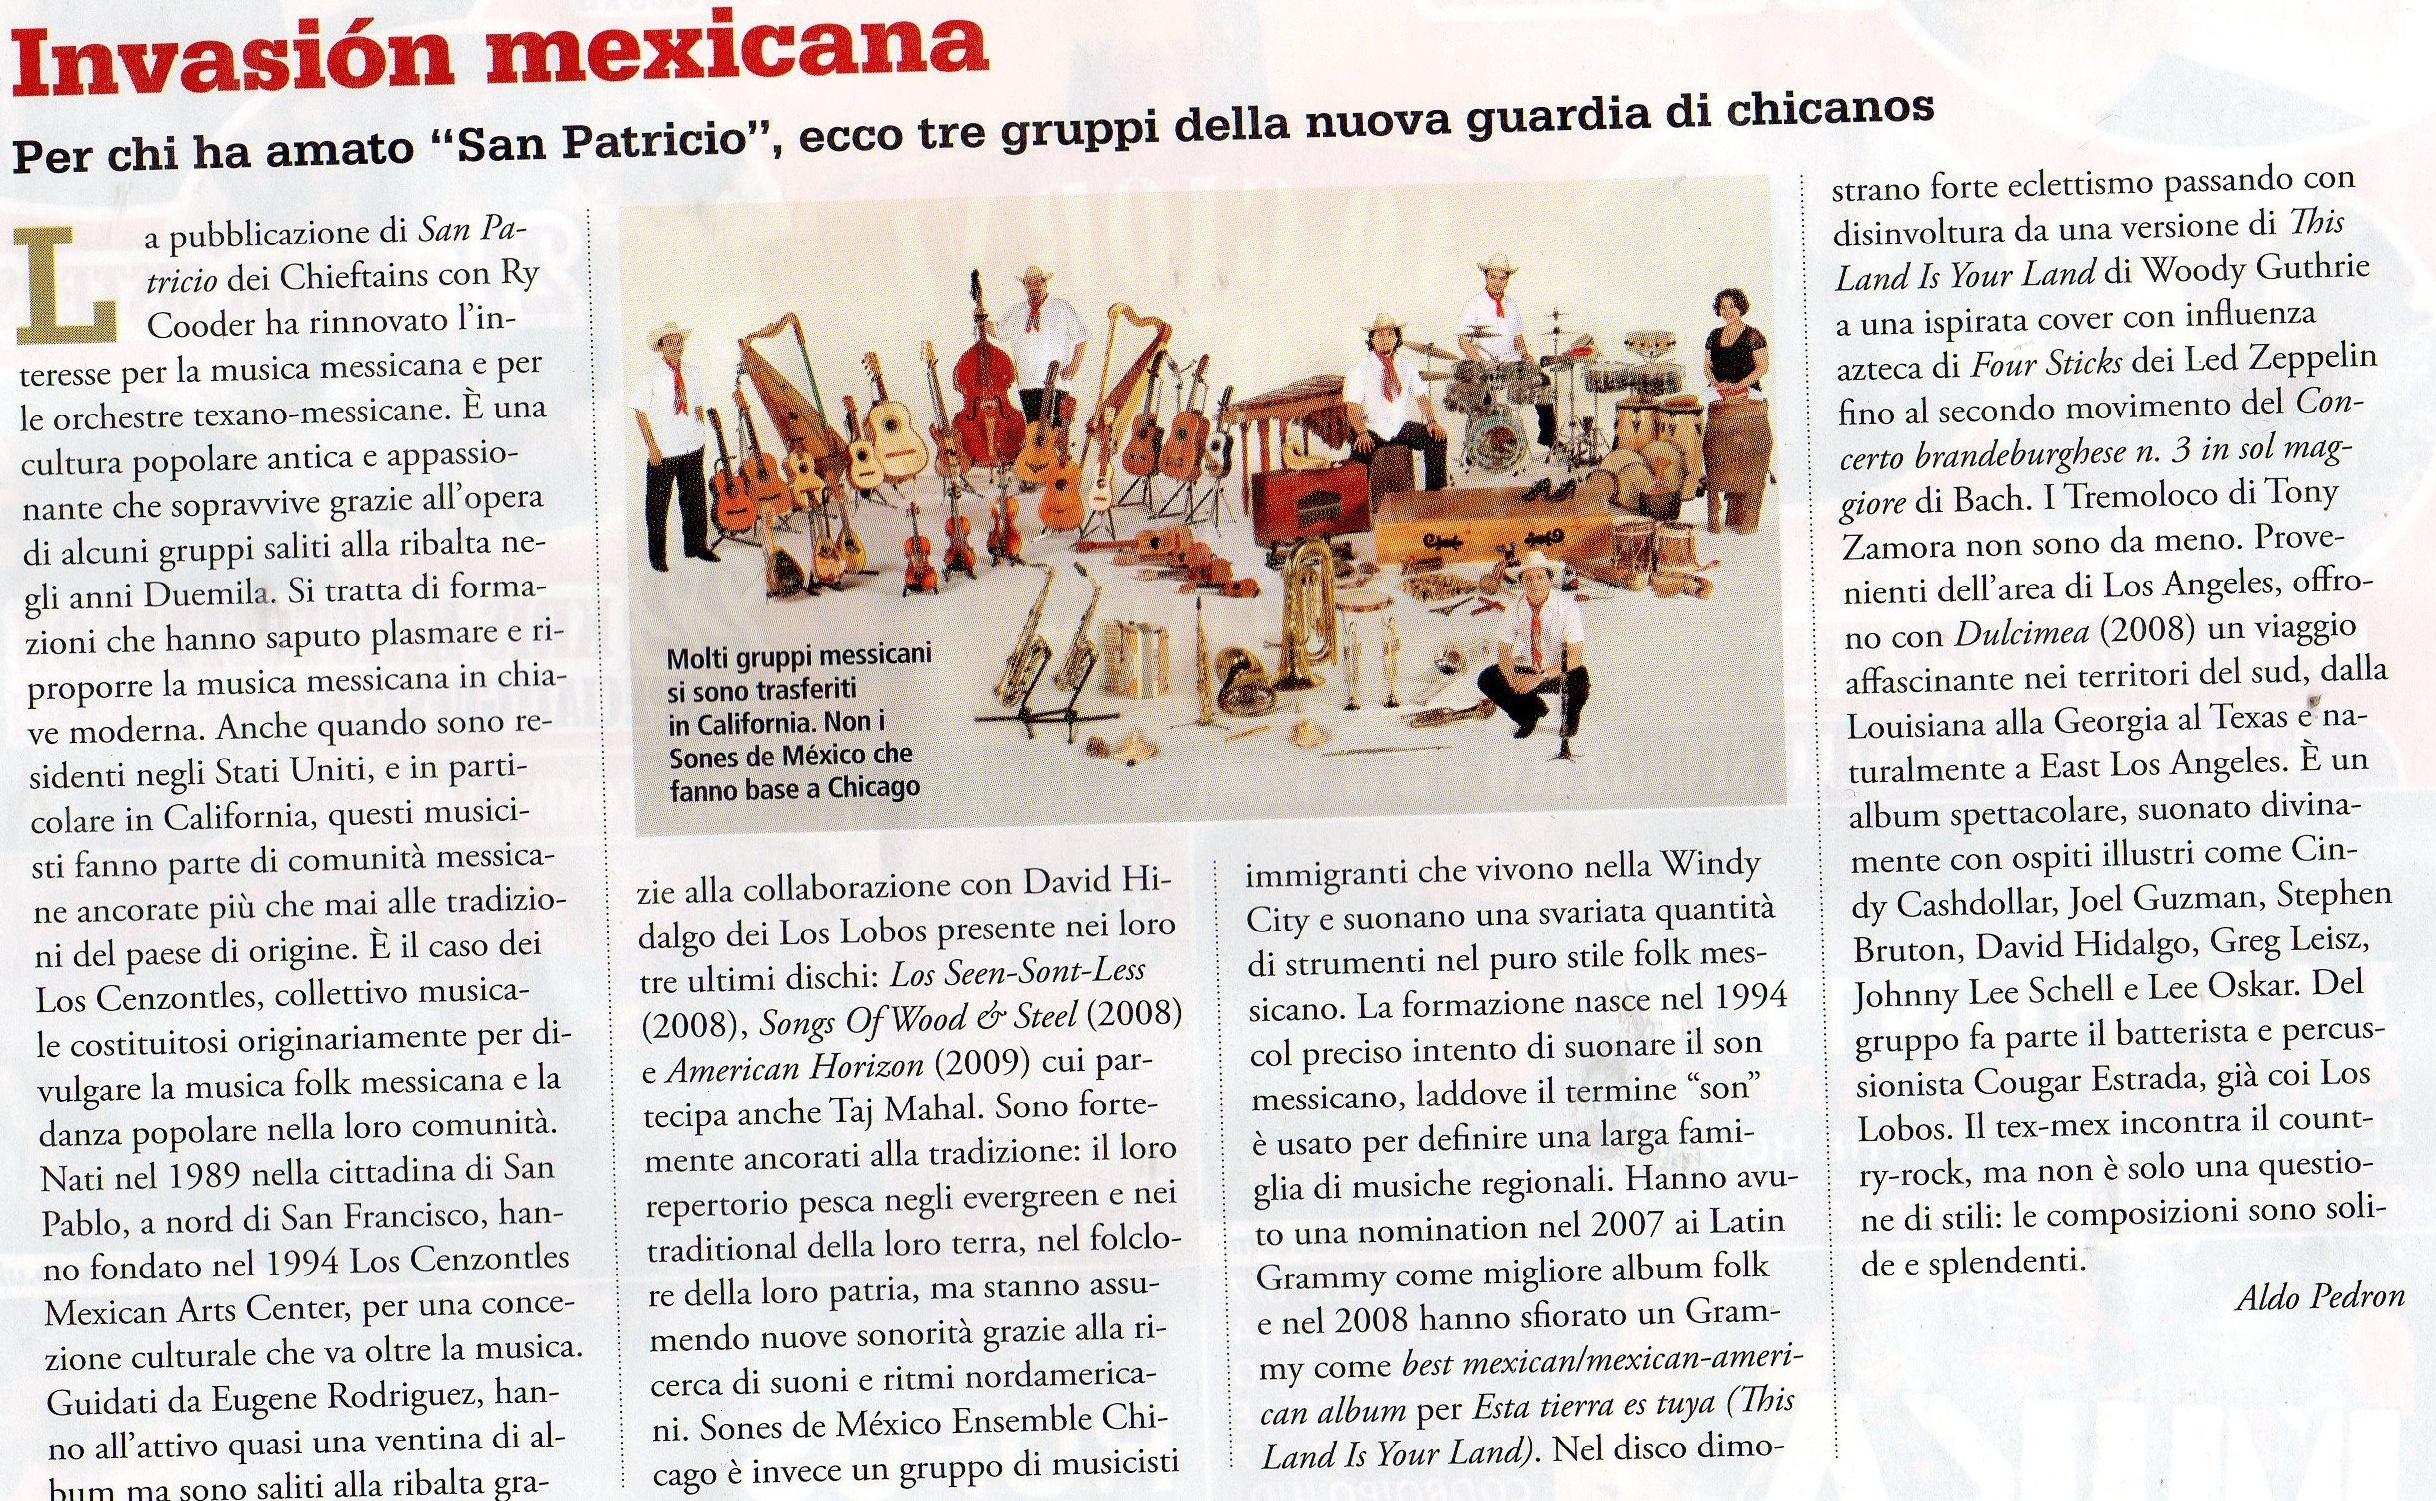 Dulcinea lyrics reviews tremolocos article in jam magazine may 2010 stopboris Images